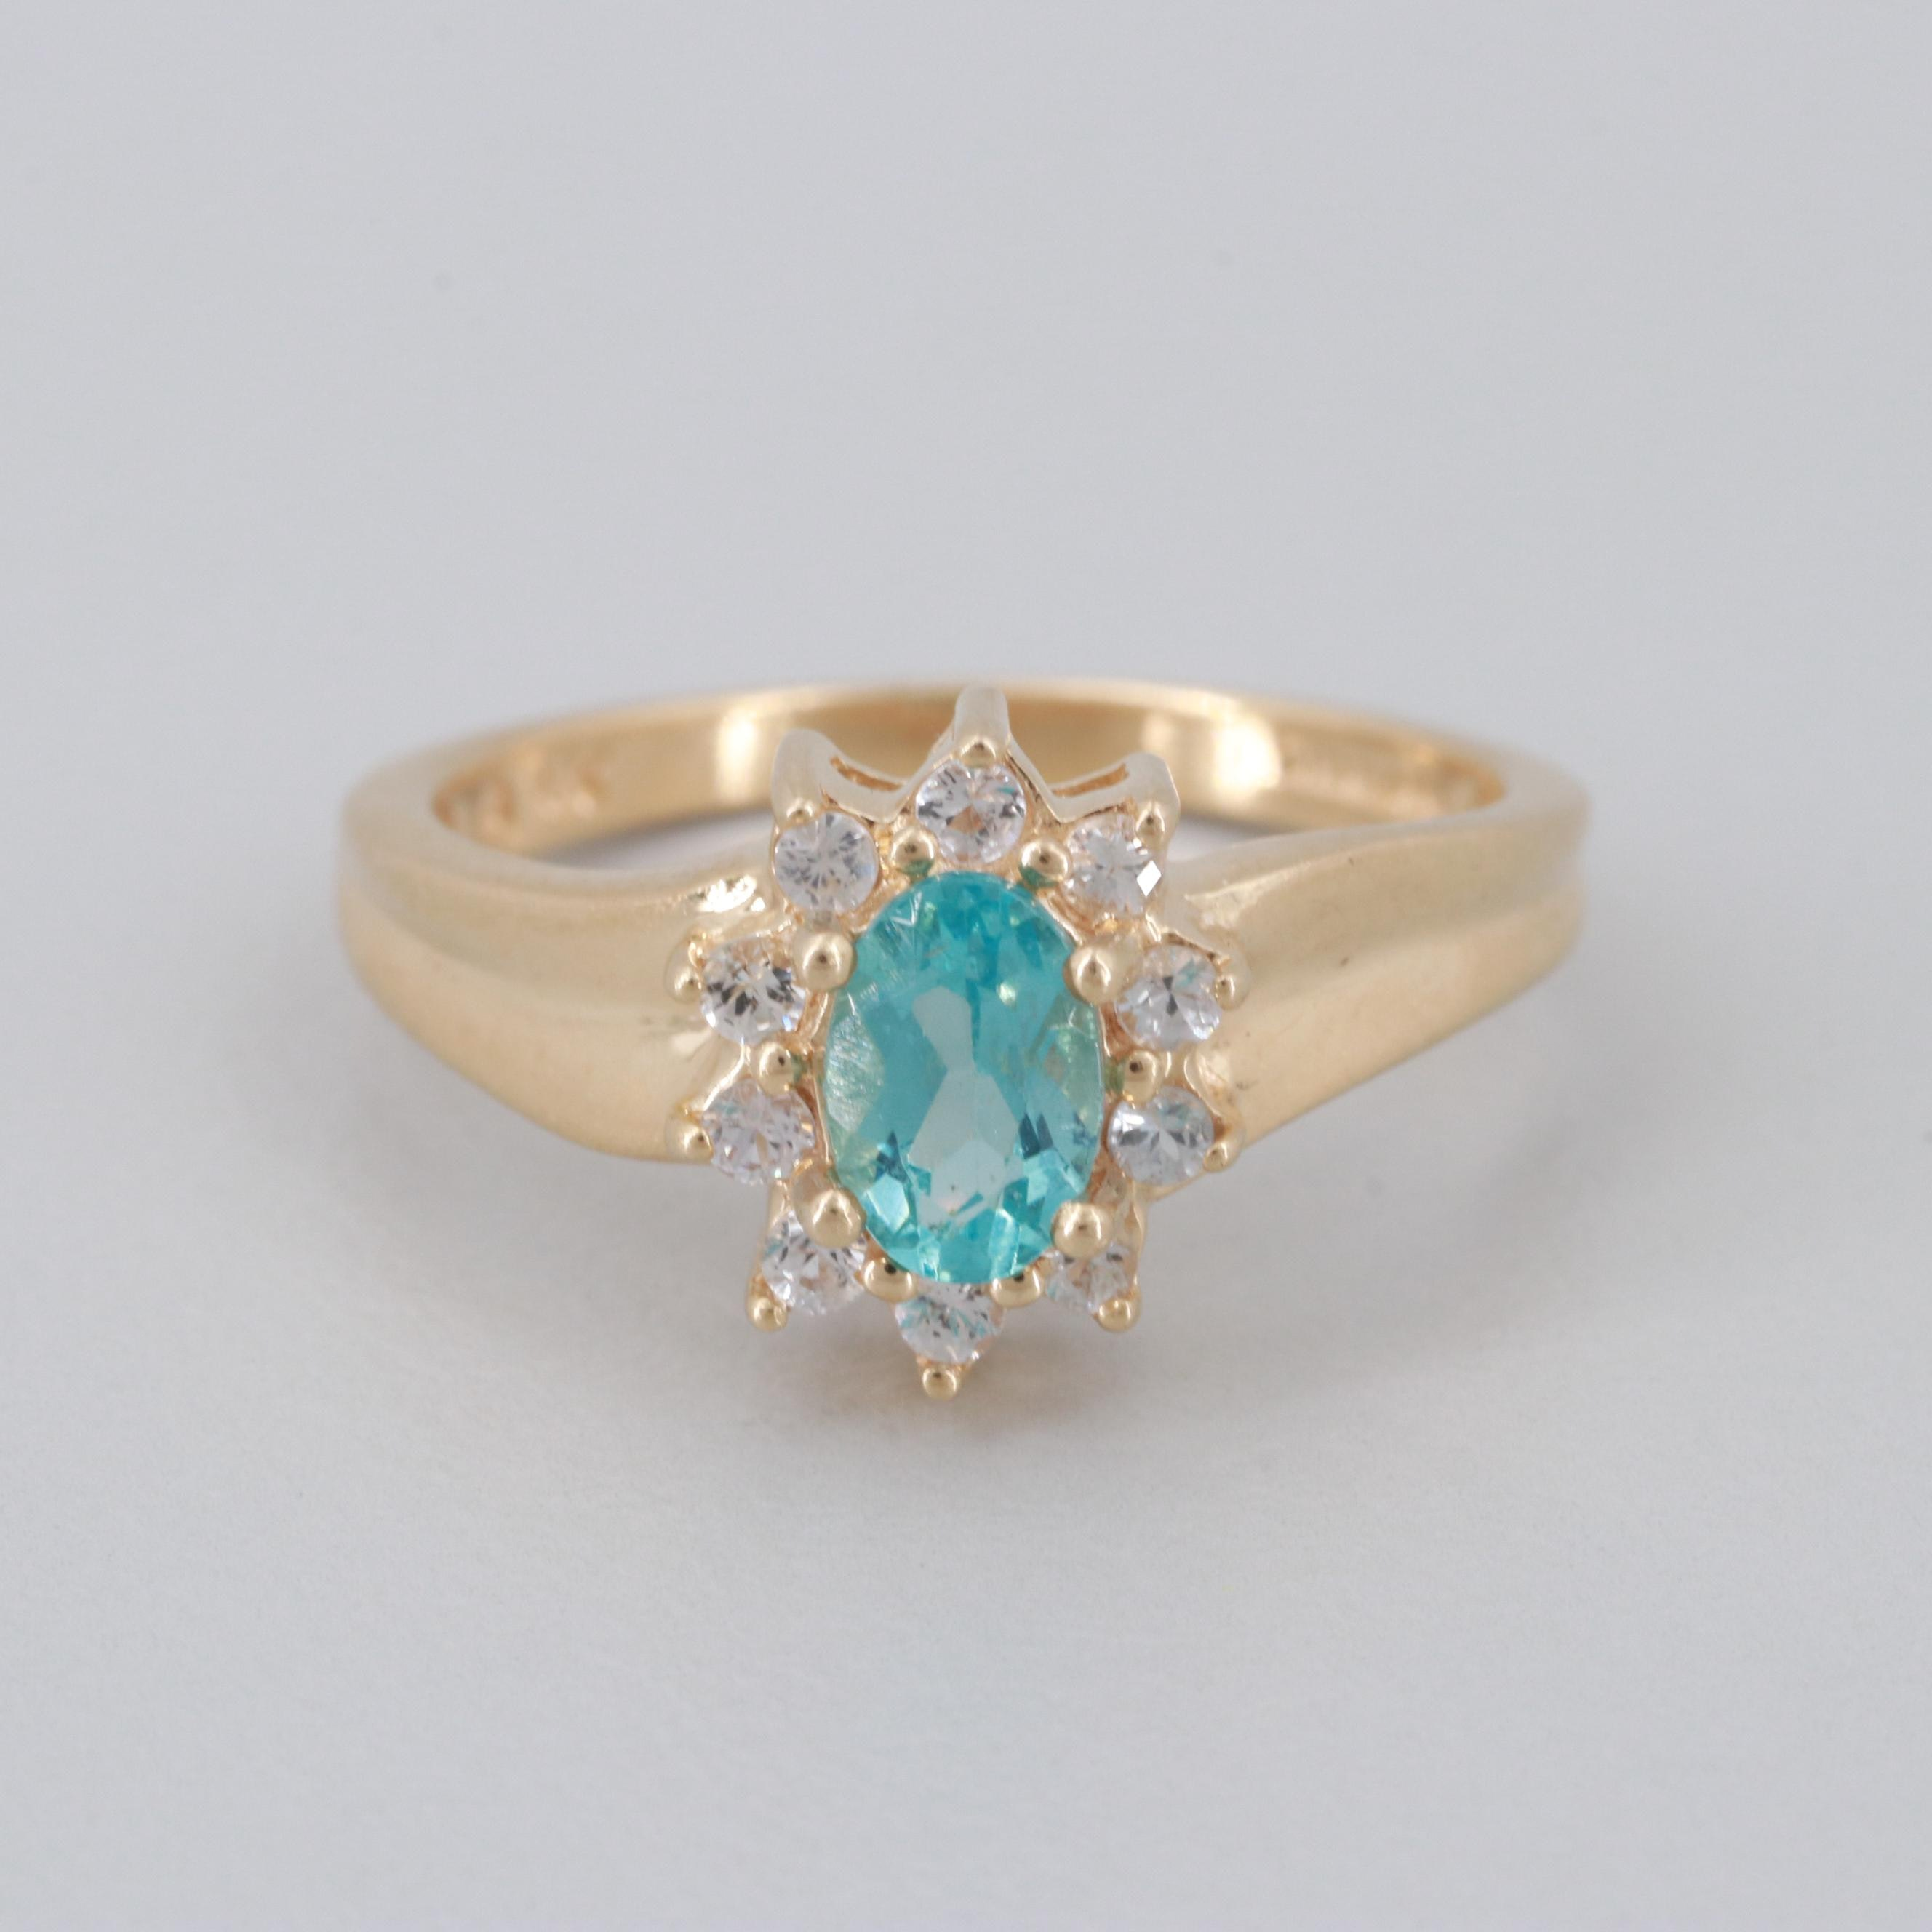 14K Yellow Gold Apatite and White Topaz Ring